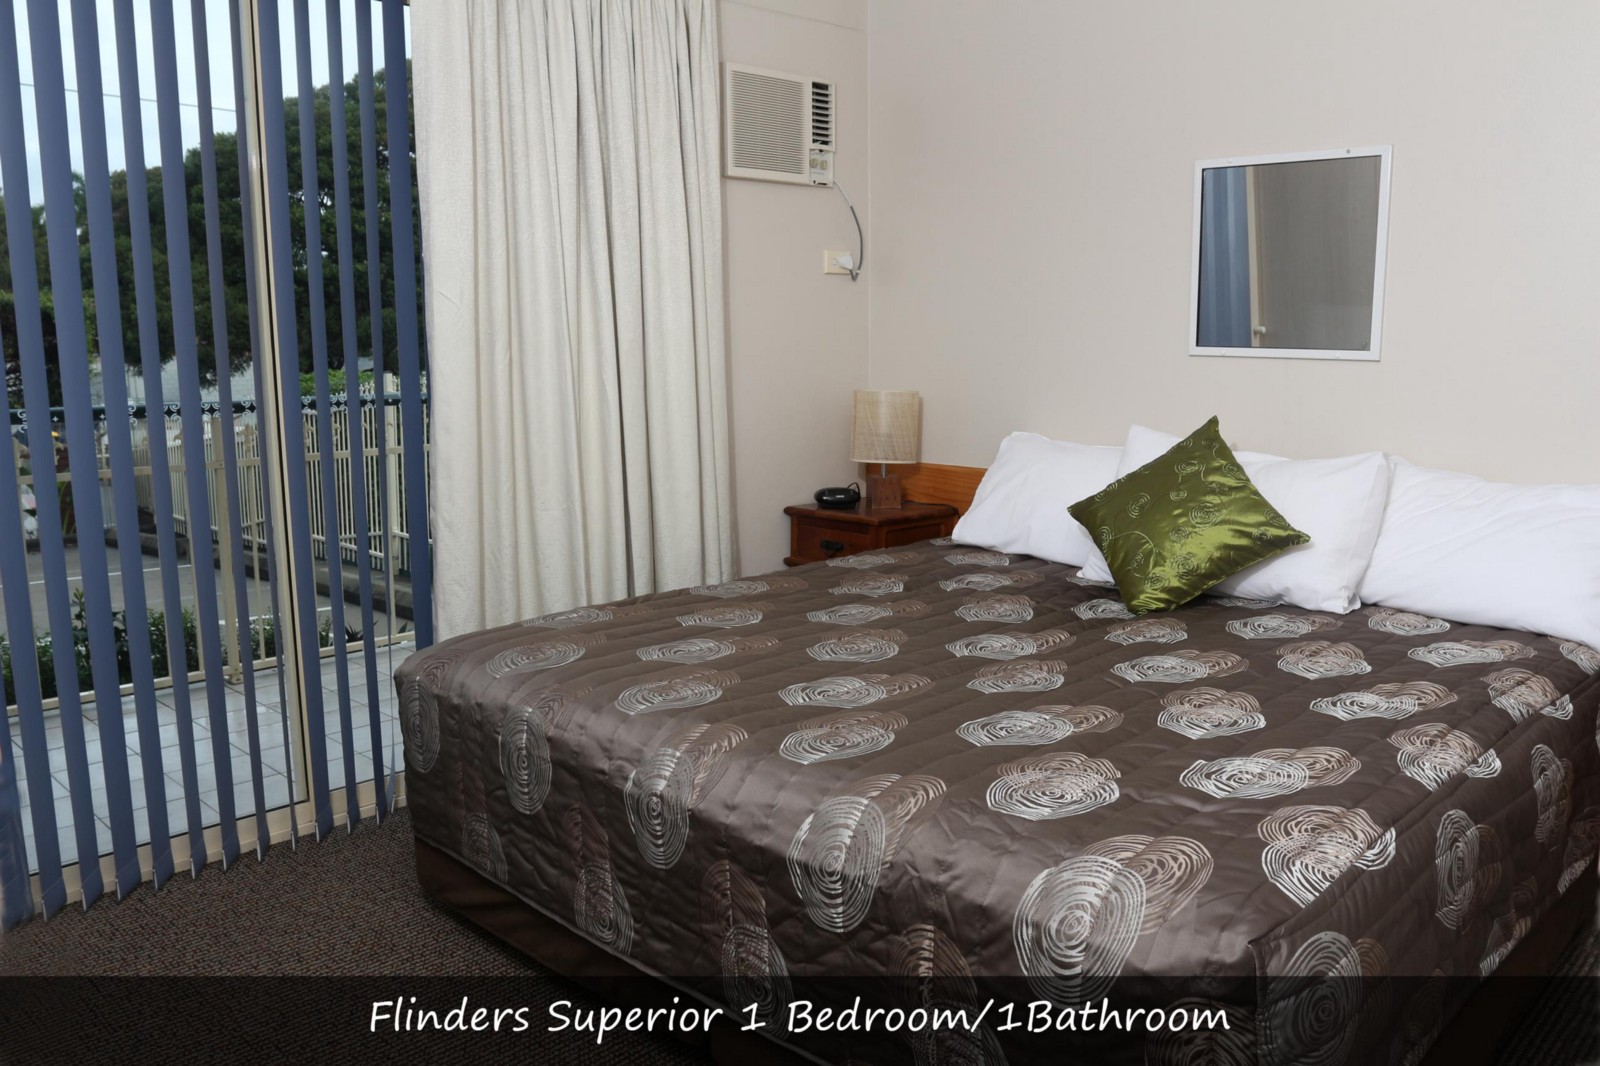 1 Bedroom Apartment Brisbane Cost Effective 1 Bedroom Apartments In Brisbane At Aabon